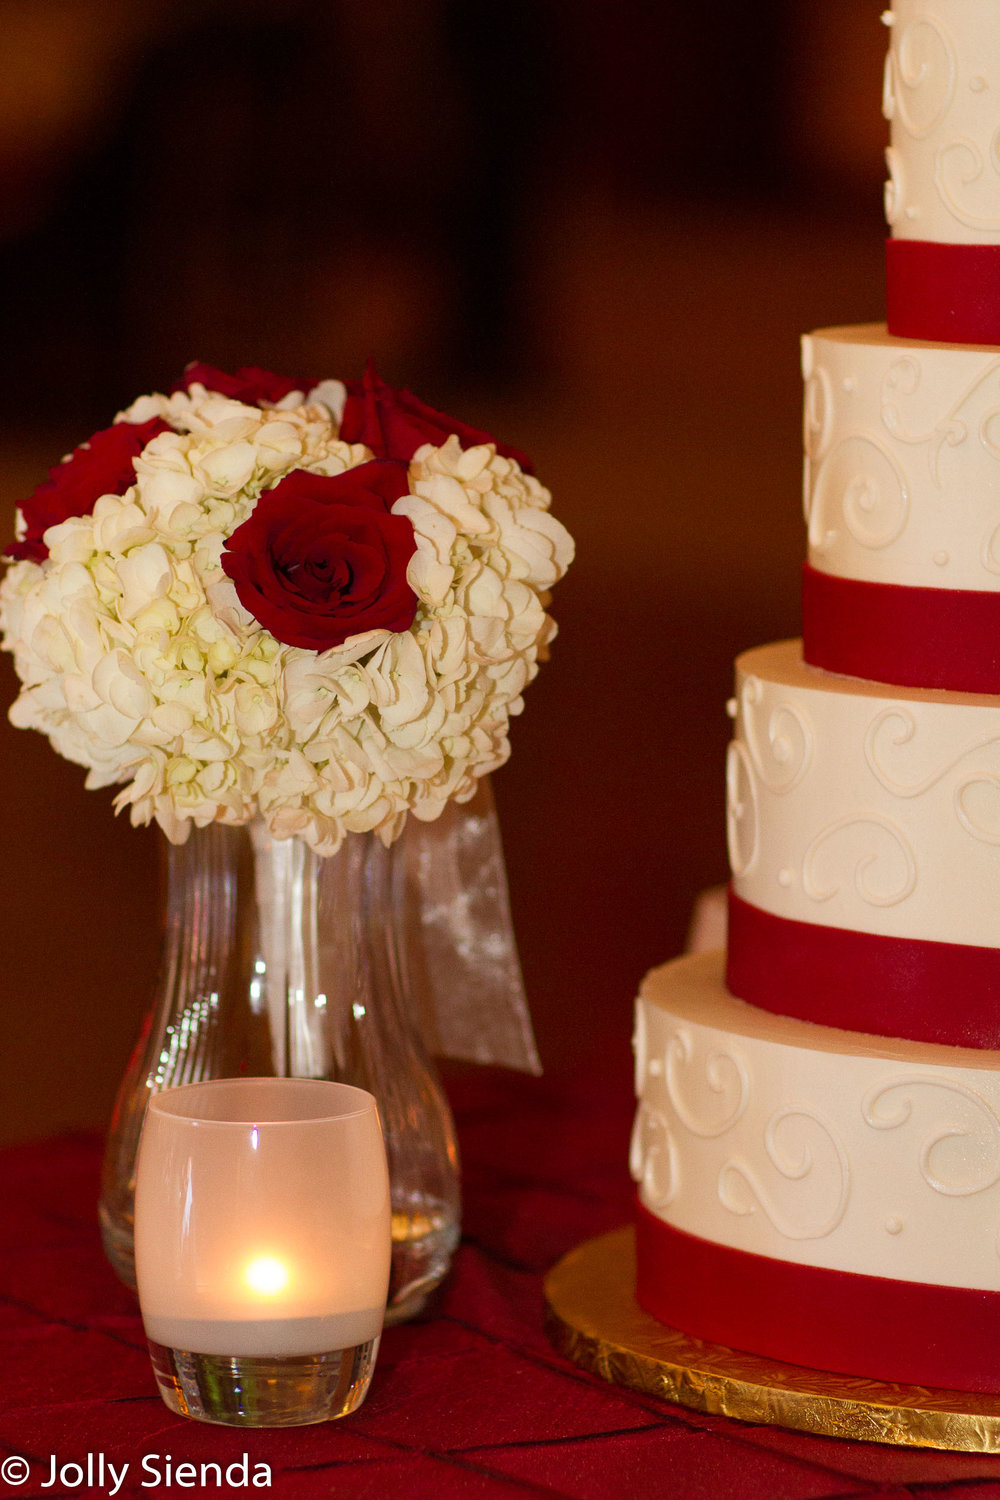 Red Roses and red and white wedding cake